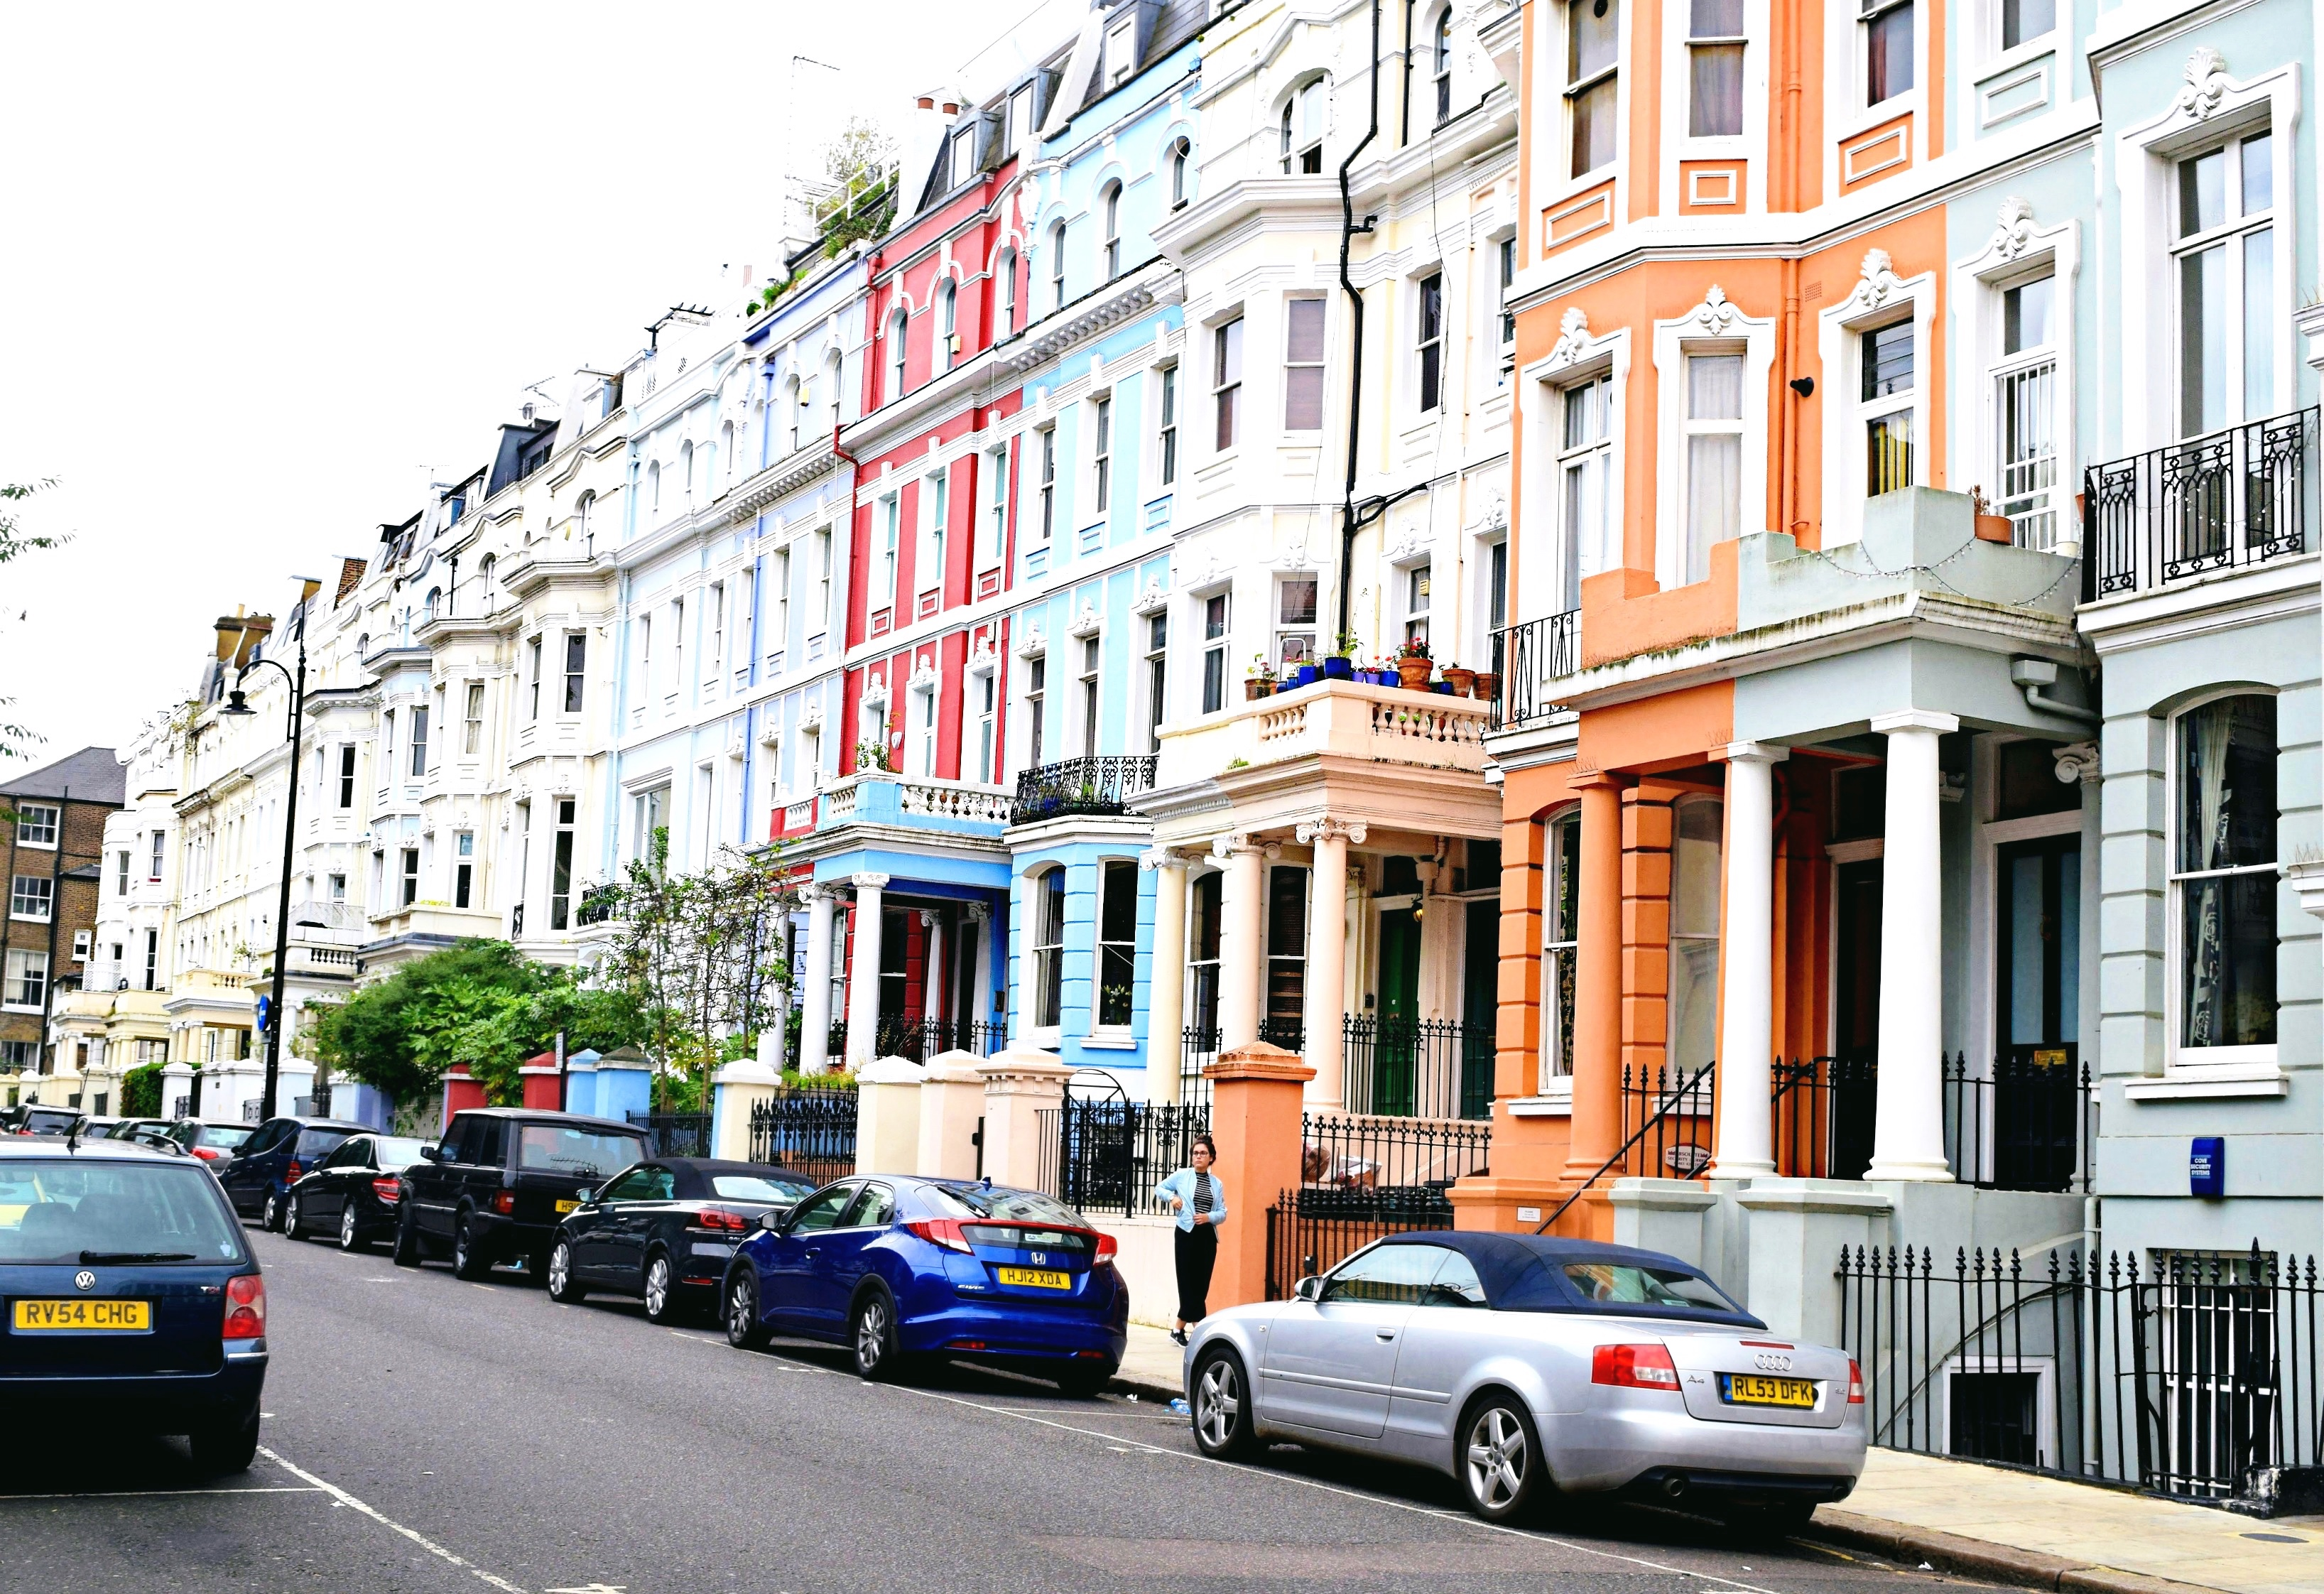 London, England Snapshots // Colorful Row Houses Notting Hill // London Travel Diary // Los Angeles Fashion Blogger Daphne Blunt: To Style, With Love